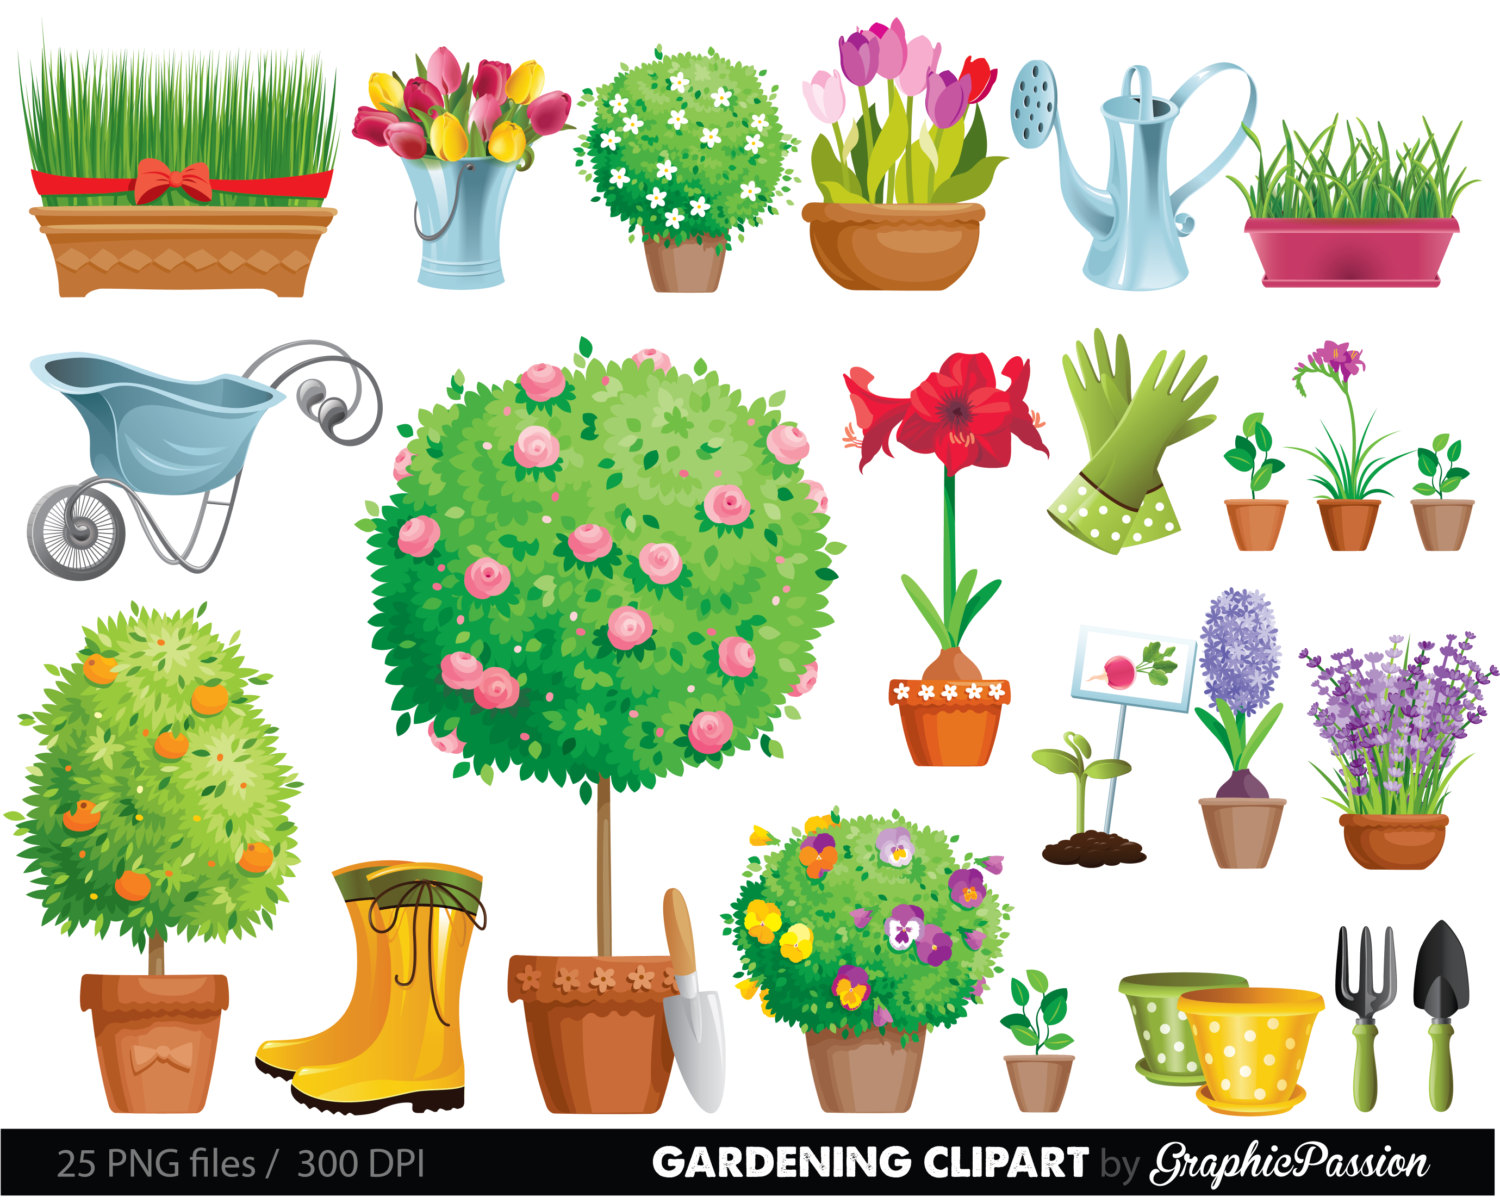 A garden plant clipart 21 free Cliparts | Download images ...